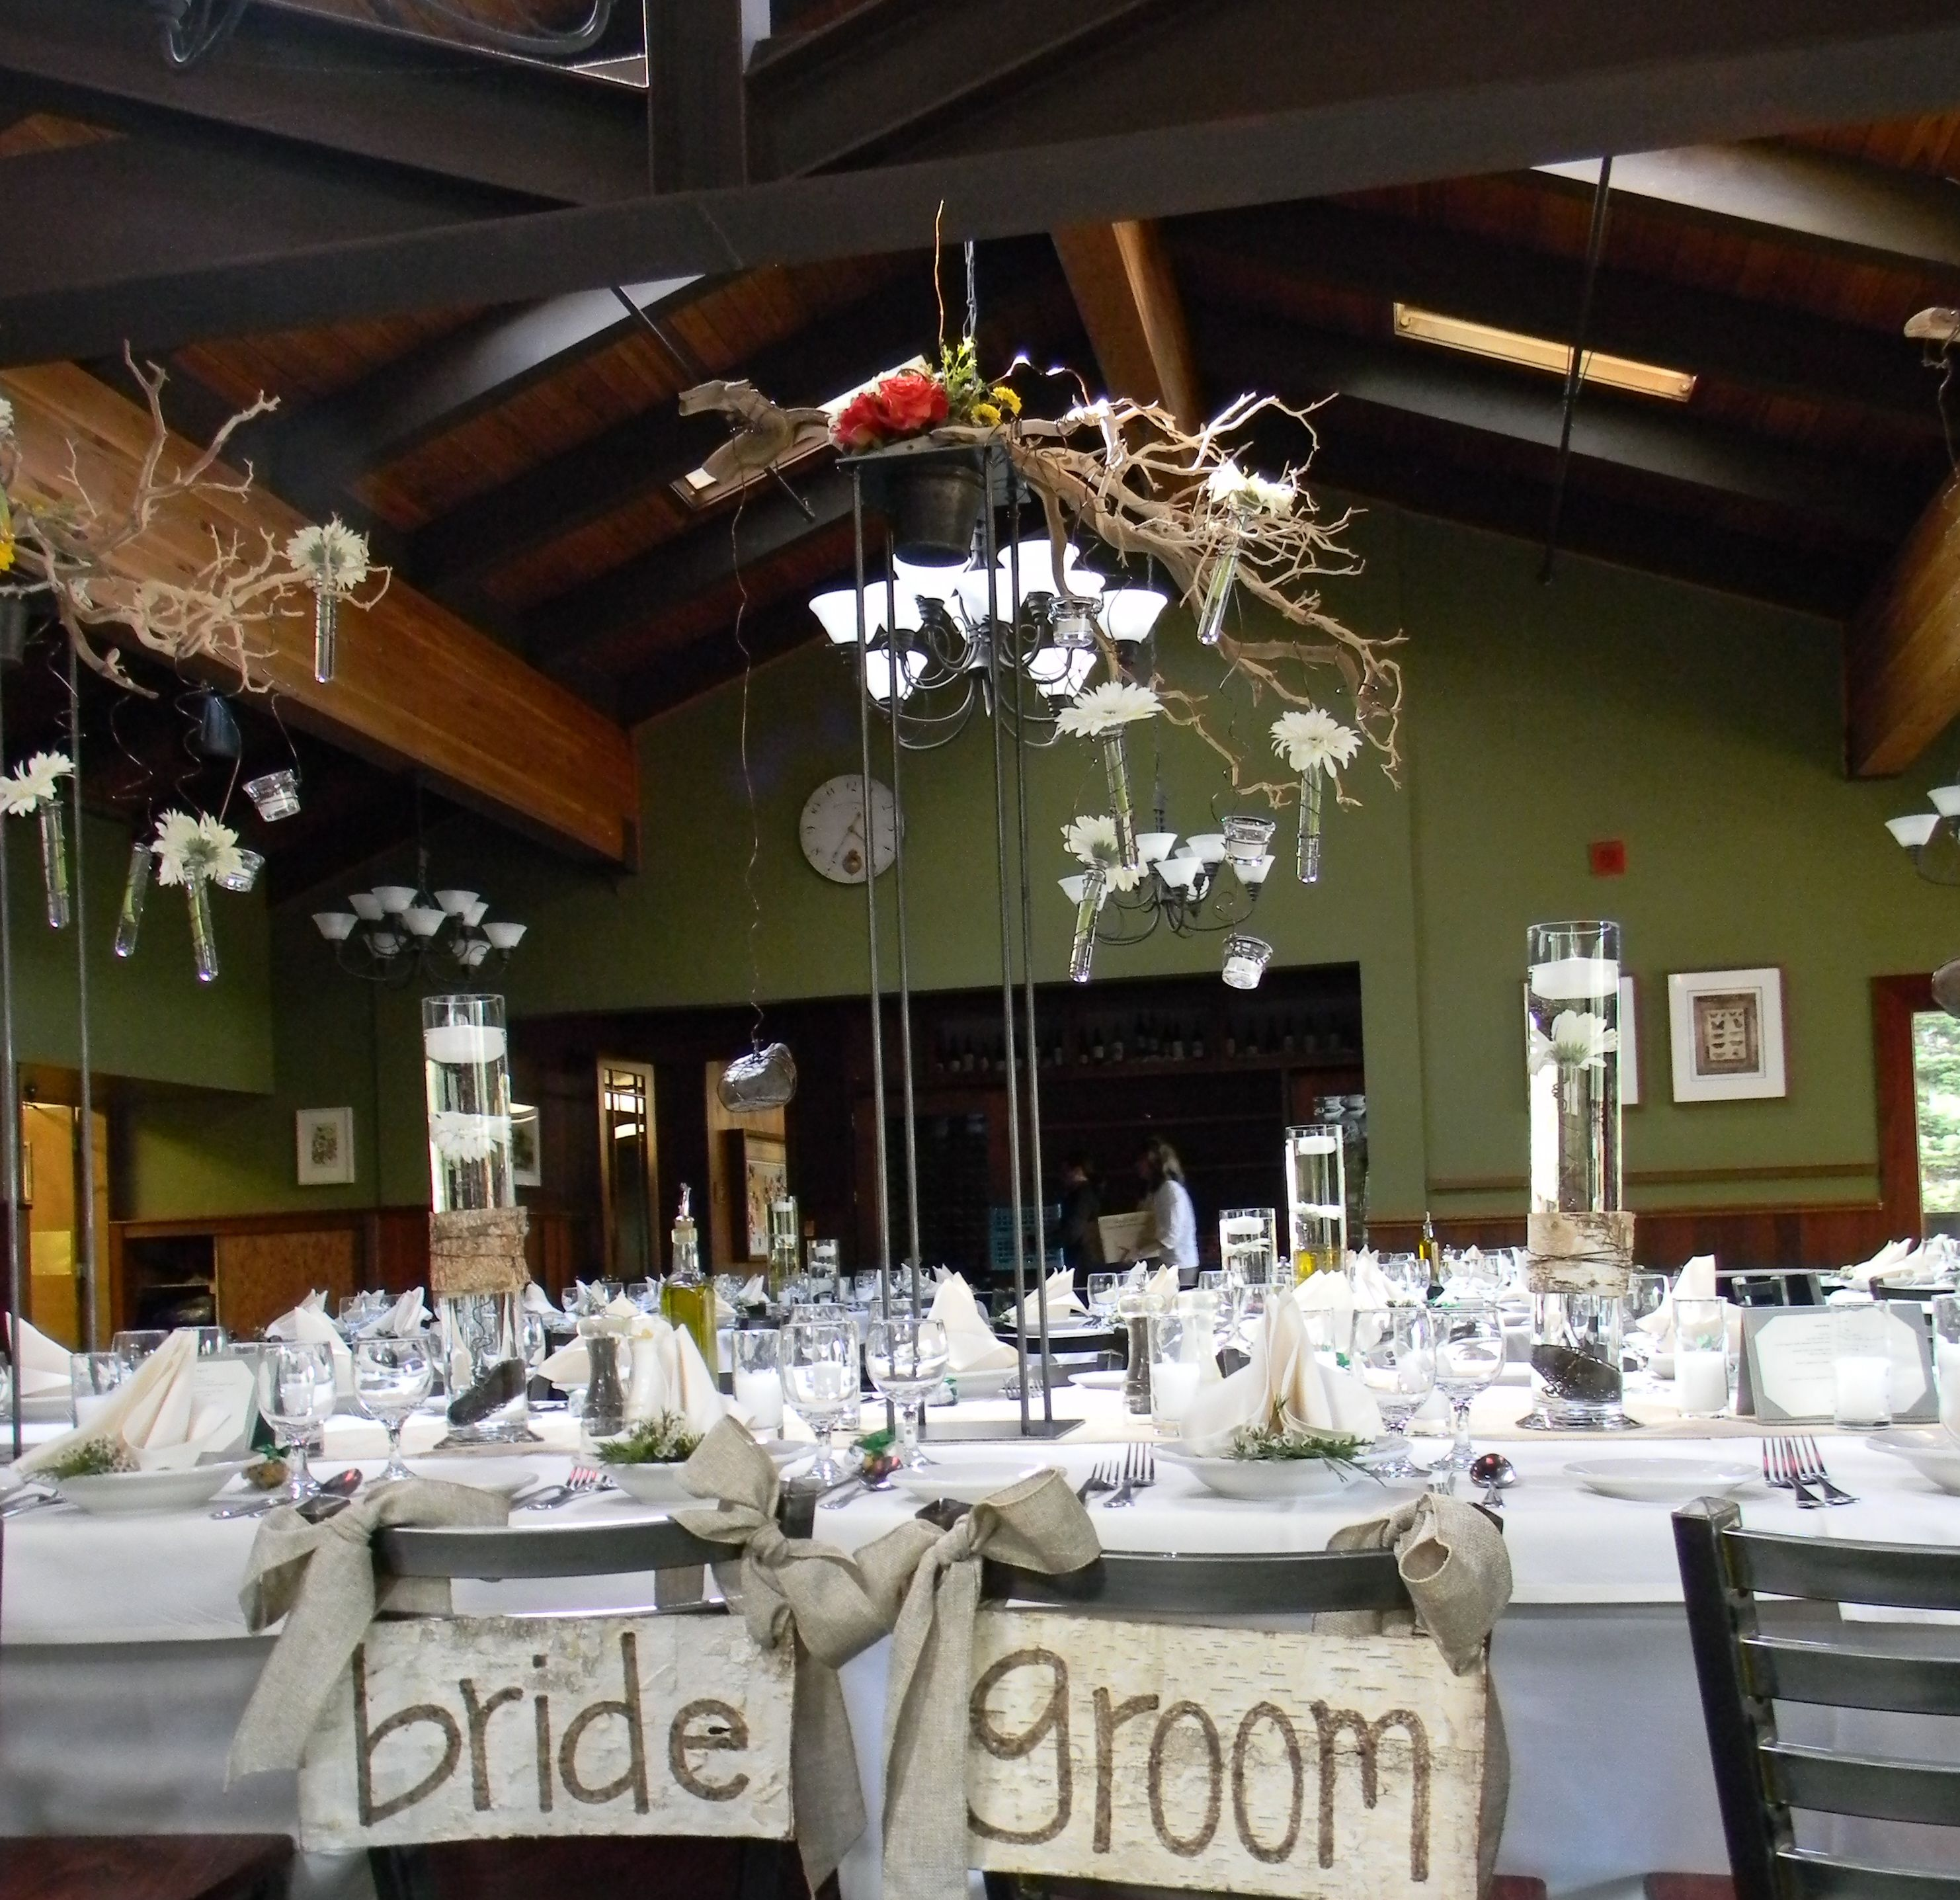 long table setup wedding reception%0A The dining room set for a spring reception dinner